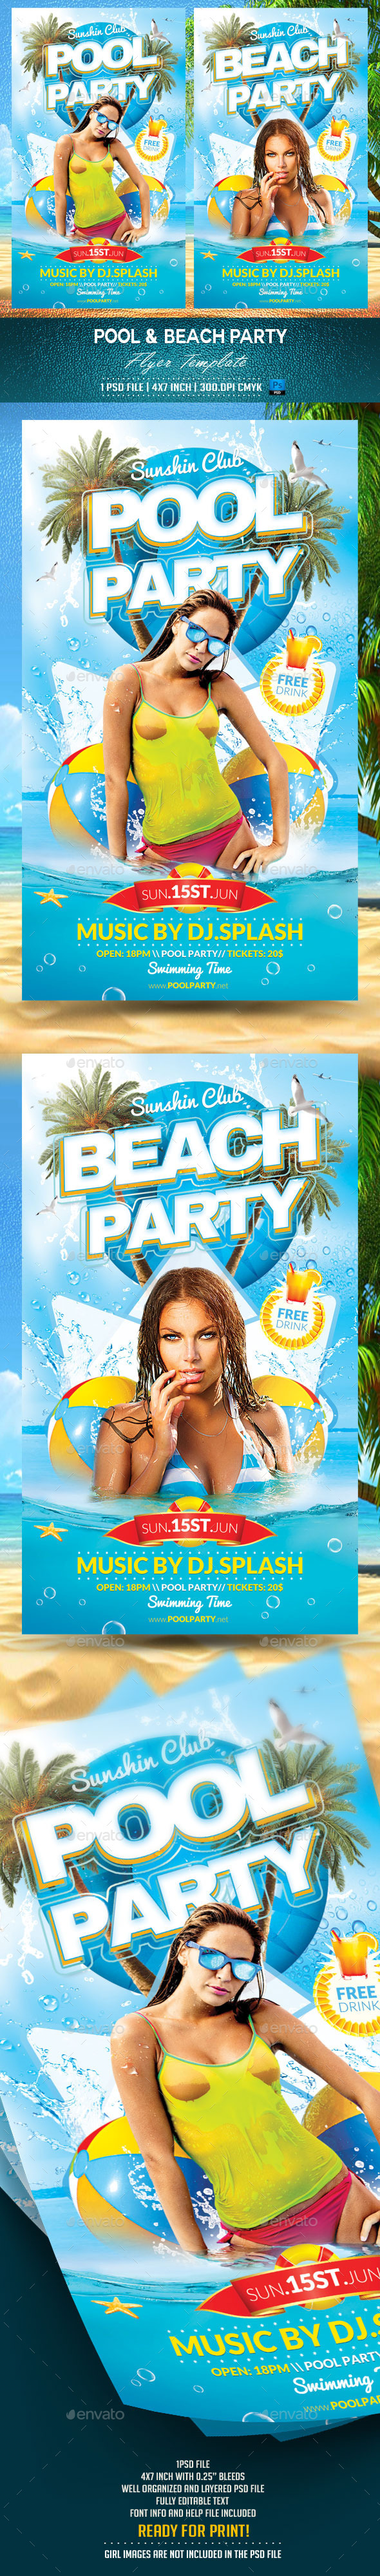 GraphicRiver Pool and Beach Party Flyer Template 11152781